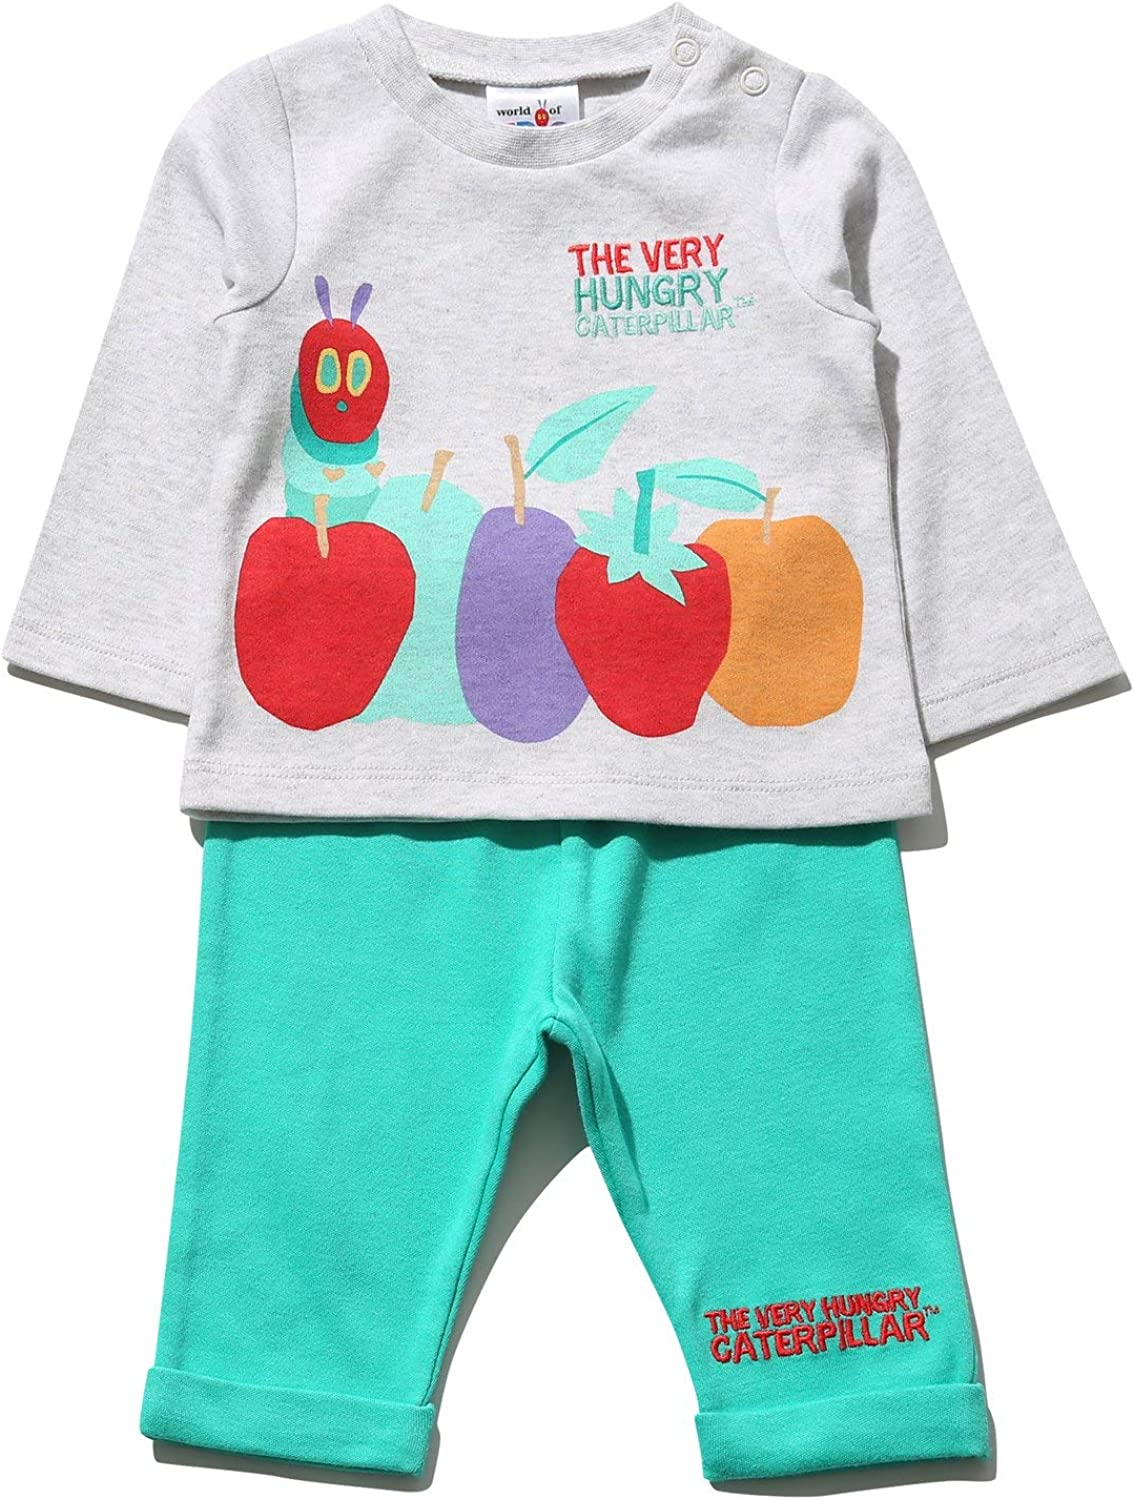 M/&Co The Very Hungry Caterpillar Baby Top and Jogger Set